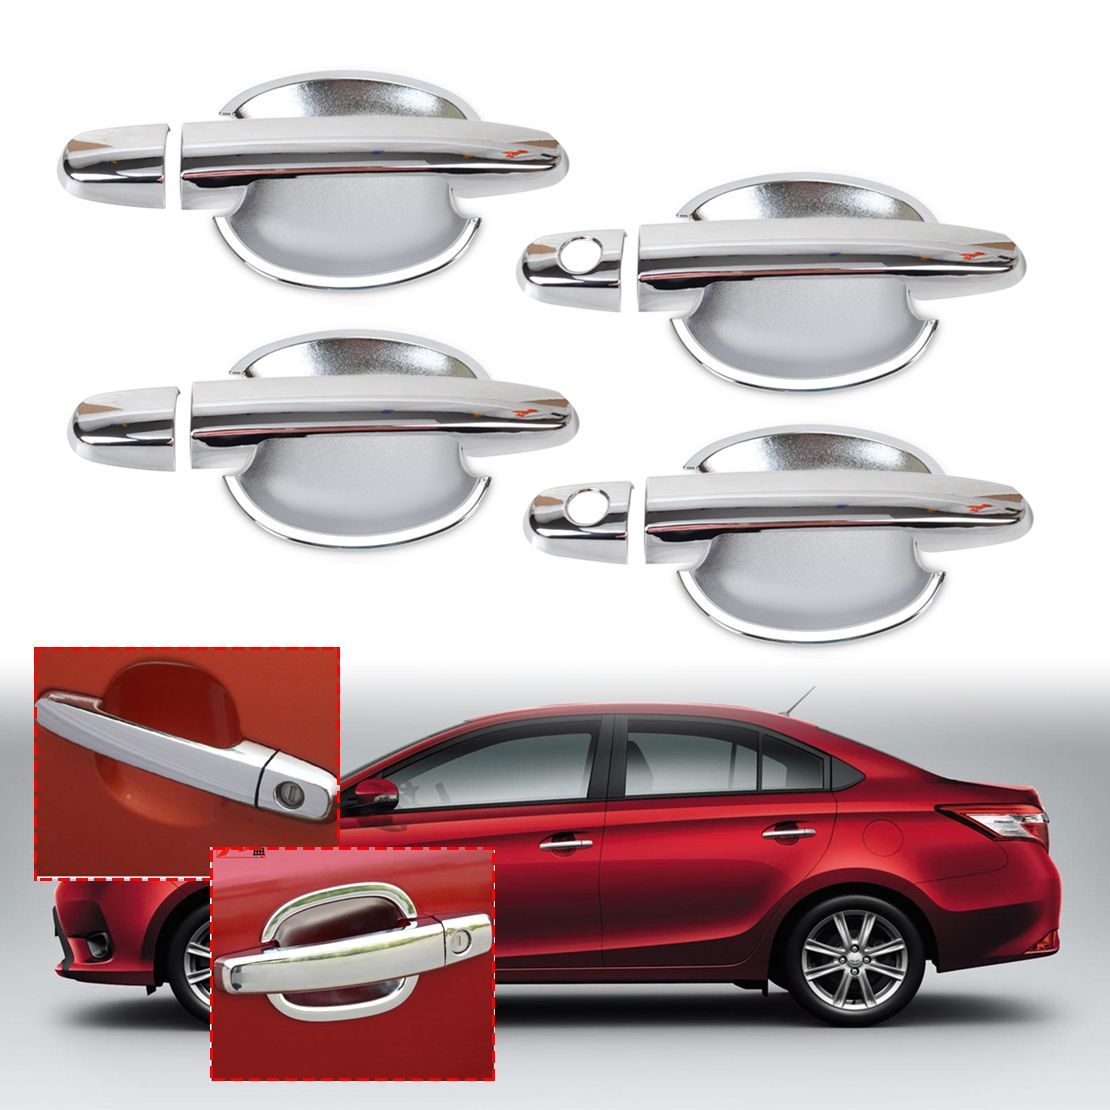 Chrome 8pcs Door Handle Cover W Smart Key 4pcs Cup Bowl Combo For Pelindung Motor Toyota